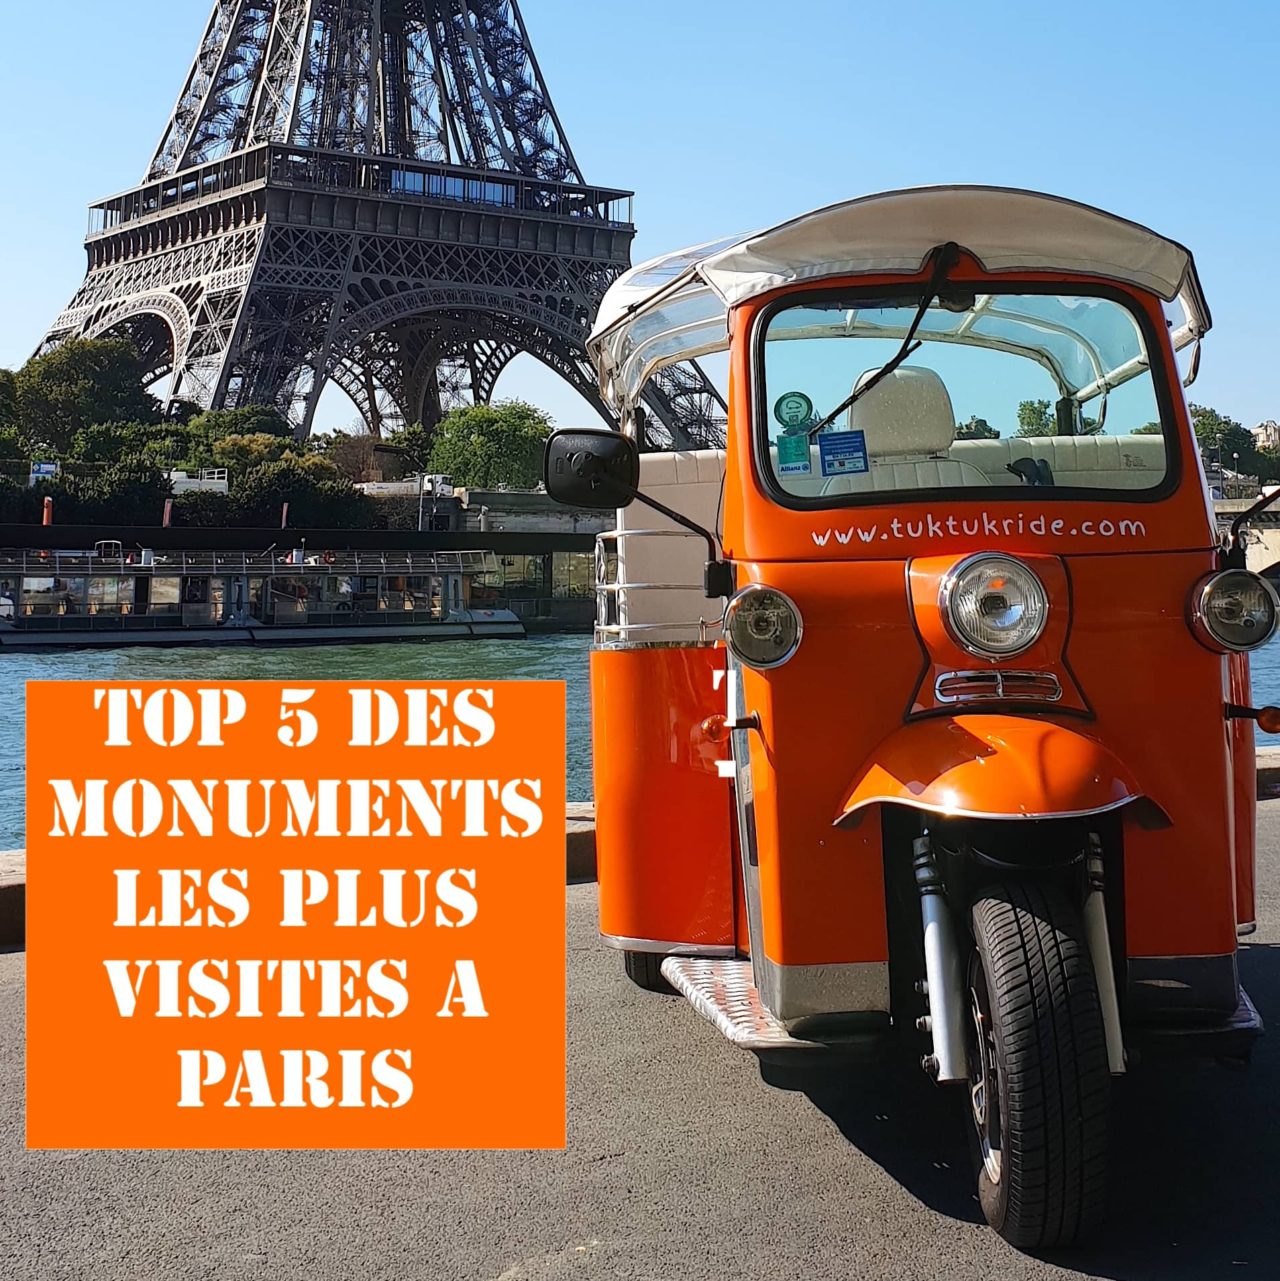 tuktuk paris top 5 monuments